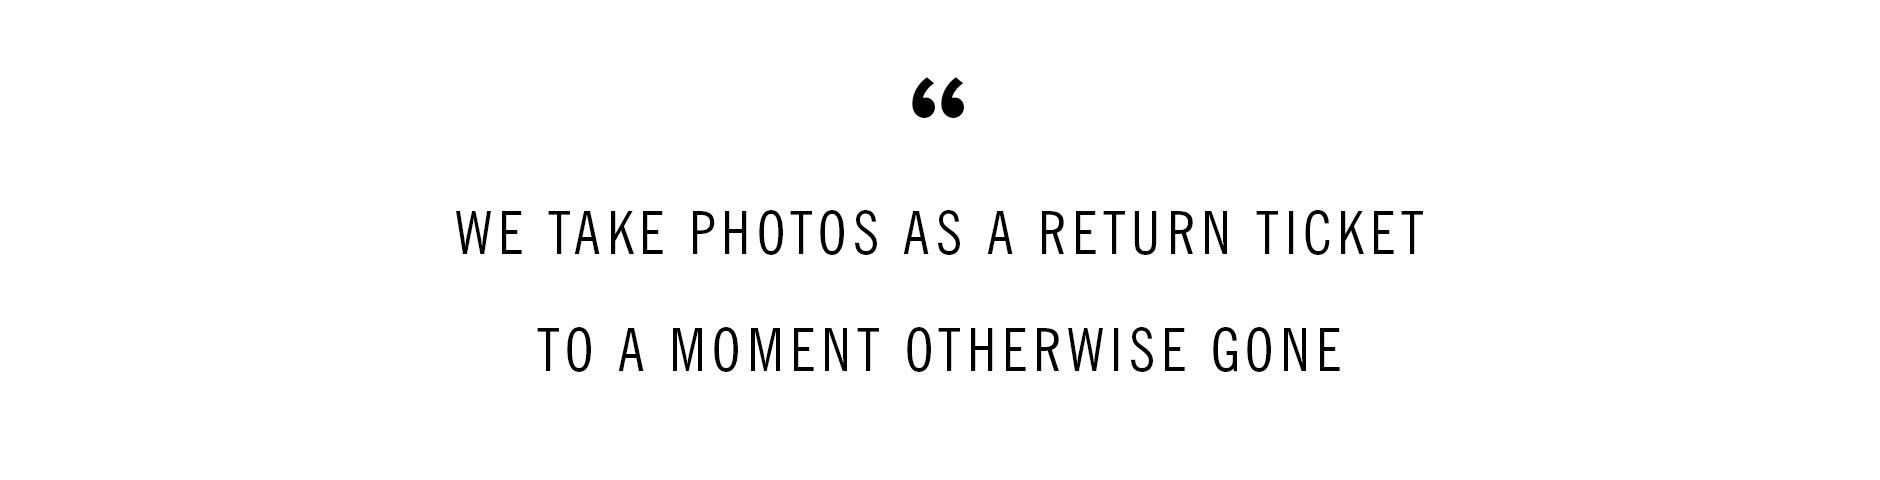 We take photos as a return ticket to a moment